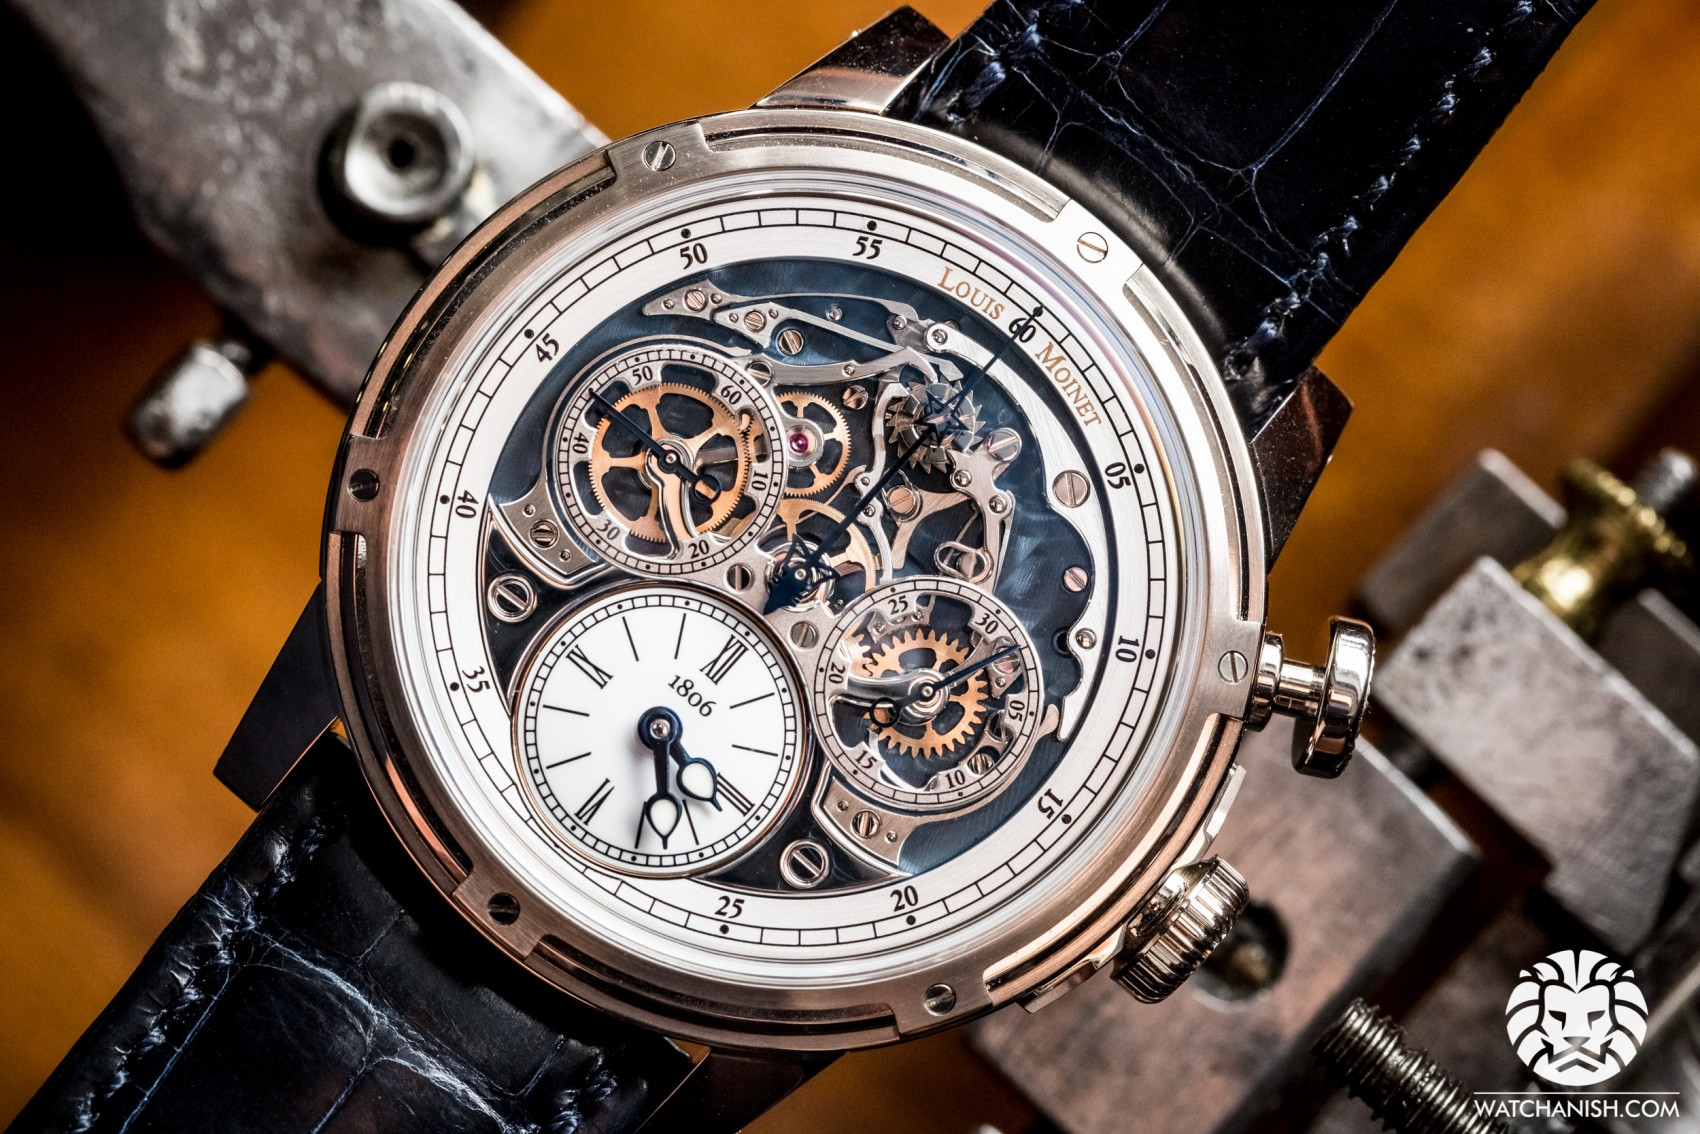 Baselworld 2015: The First Replica Louis Moinet Chronograph Memoris Rose Gold Watch